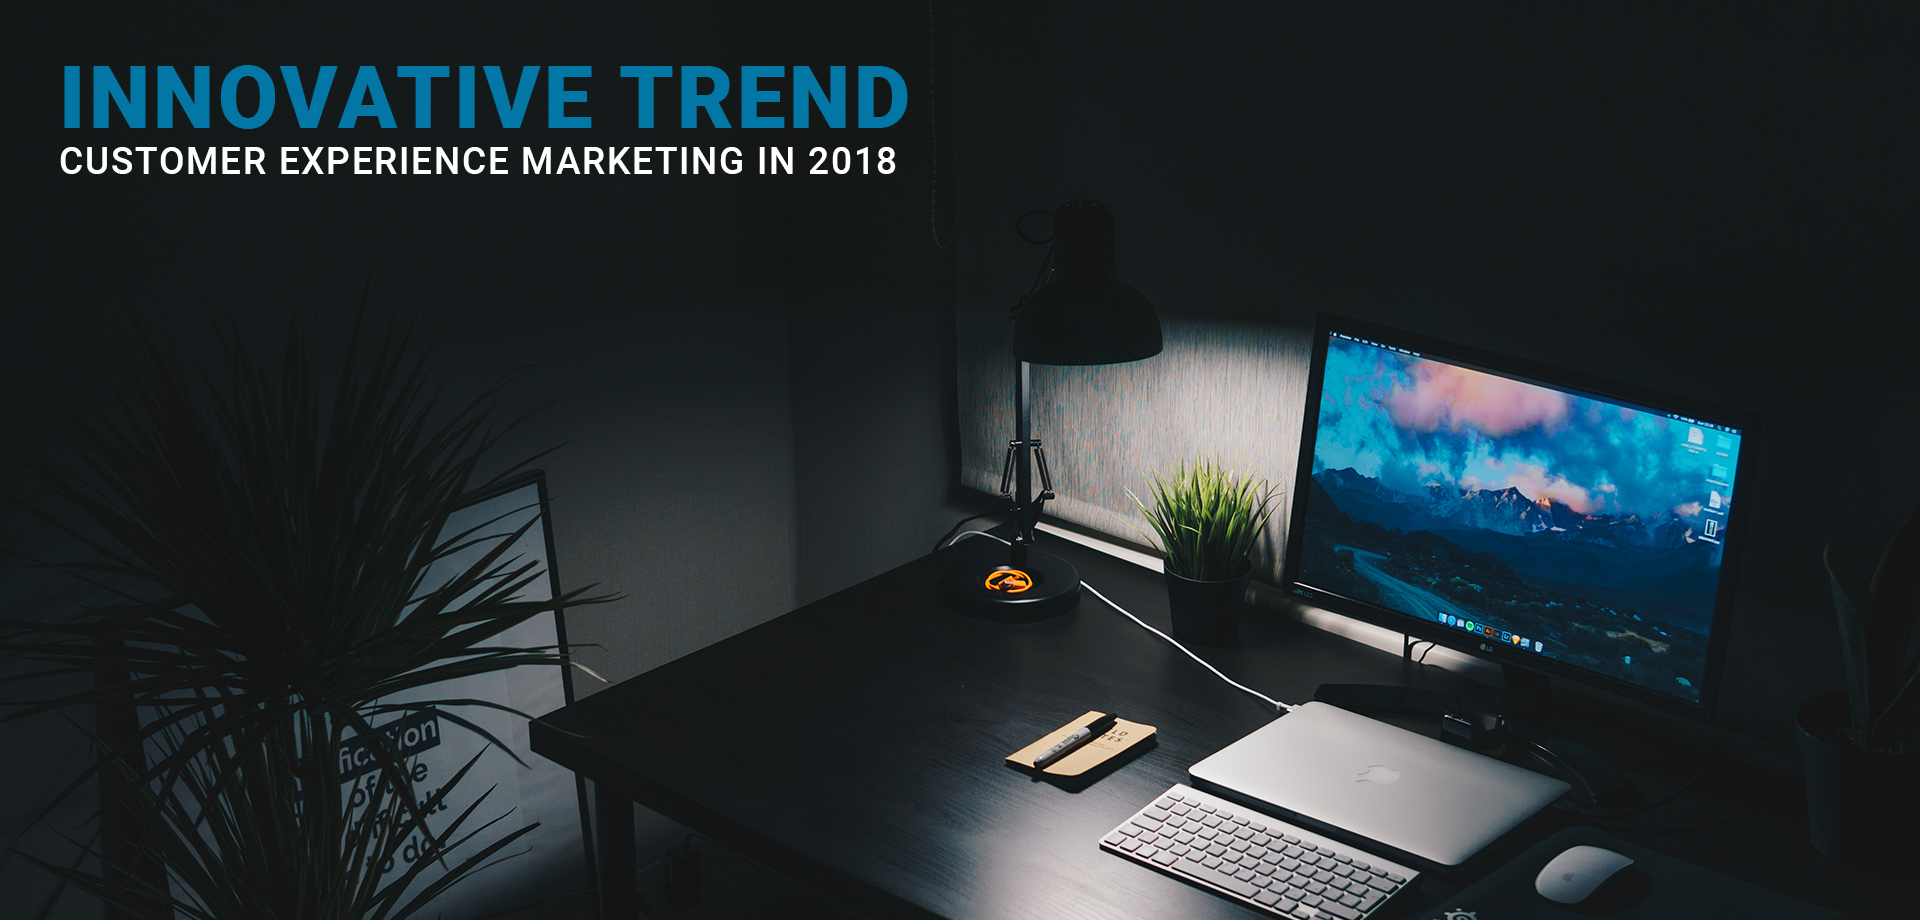 Innovating Trend - Customer Experience Marketing in 2018, guest blog by Digitawise